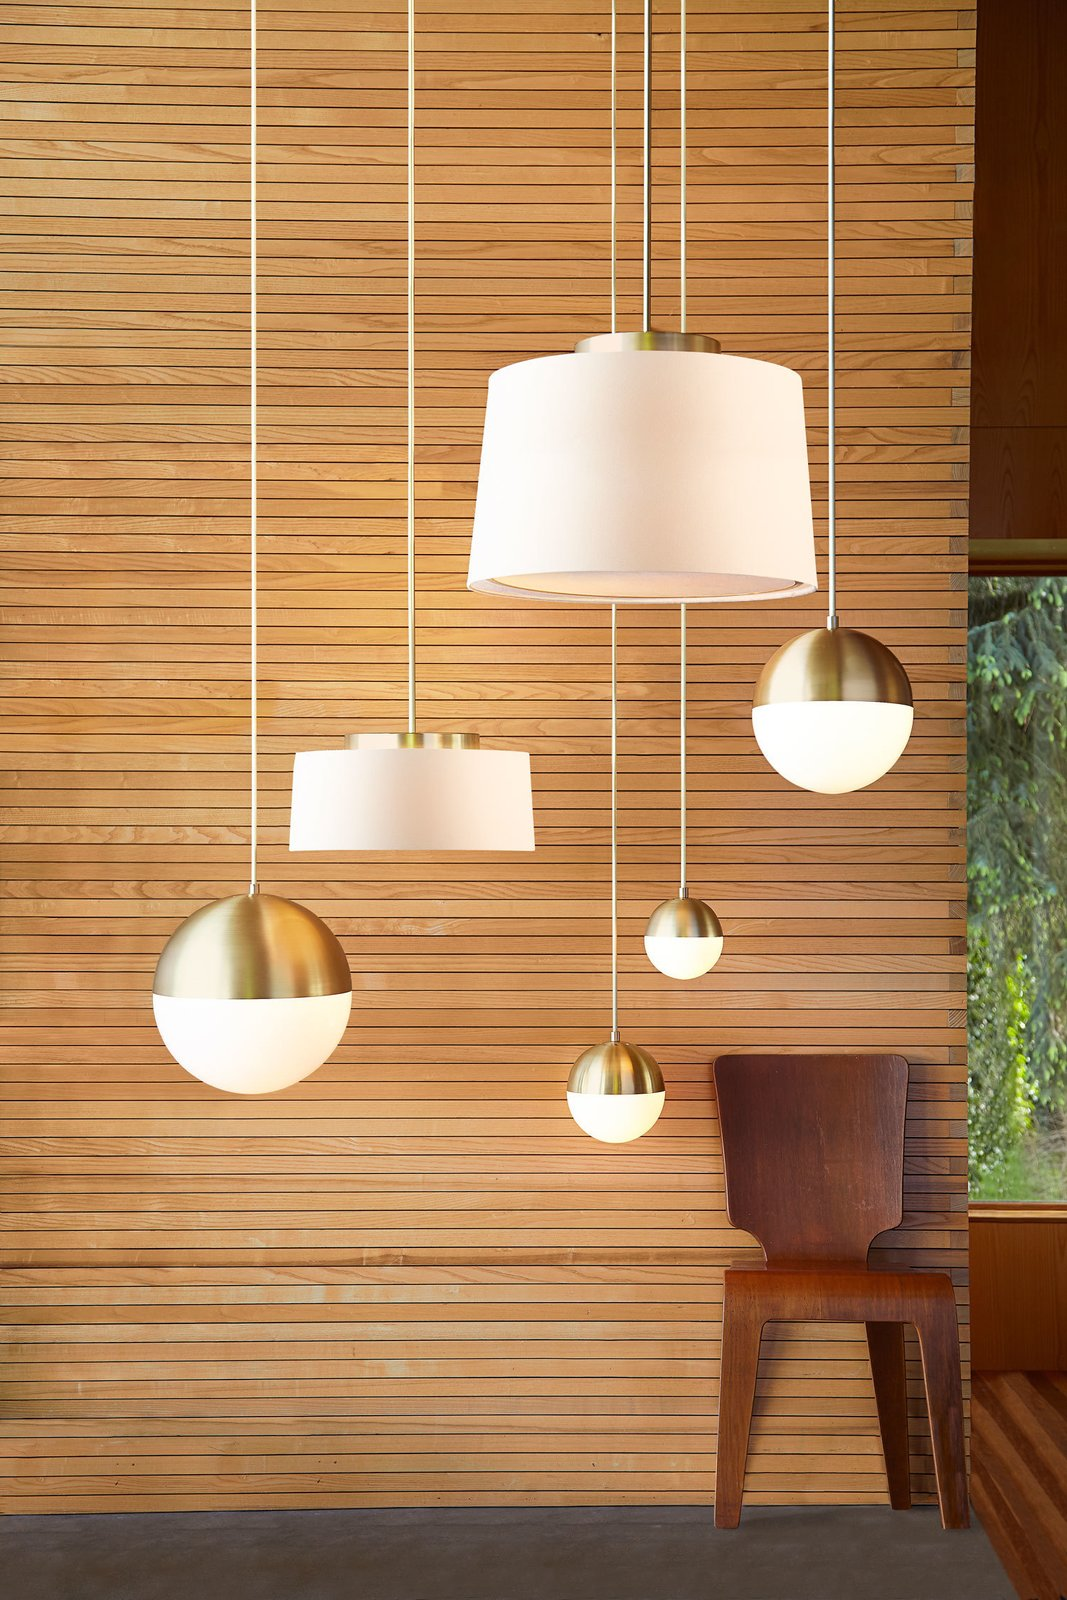 Living Room, Pendant Lighting, and Chair The collection combines influences from modernism and the Arts and Crafts movement. The Cedar & Moss pendants with a brushed satin finish are shown here.  Photo 3 of 7 in Classic Modernist House in Portland Inspires a Lighting and Furniture Line